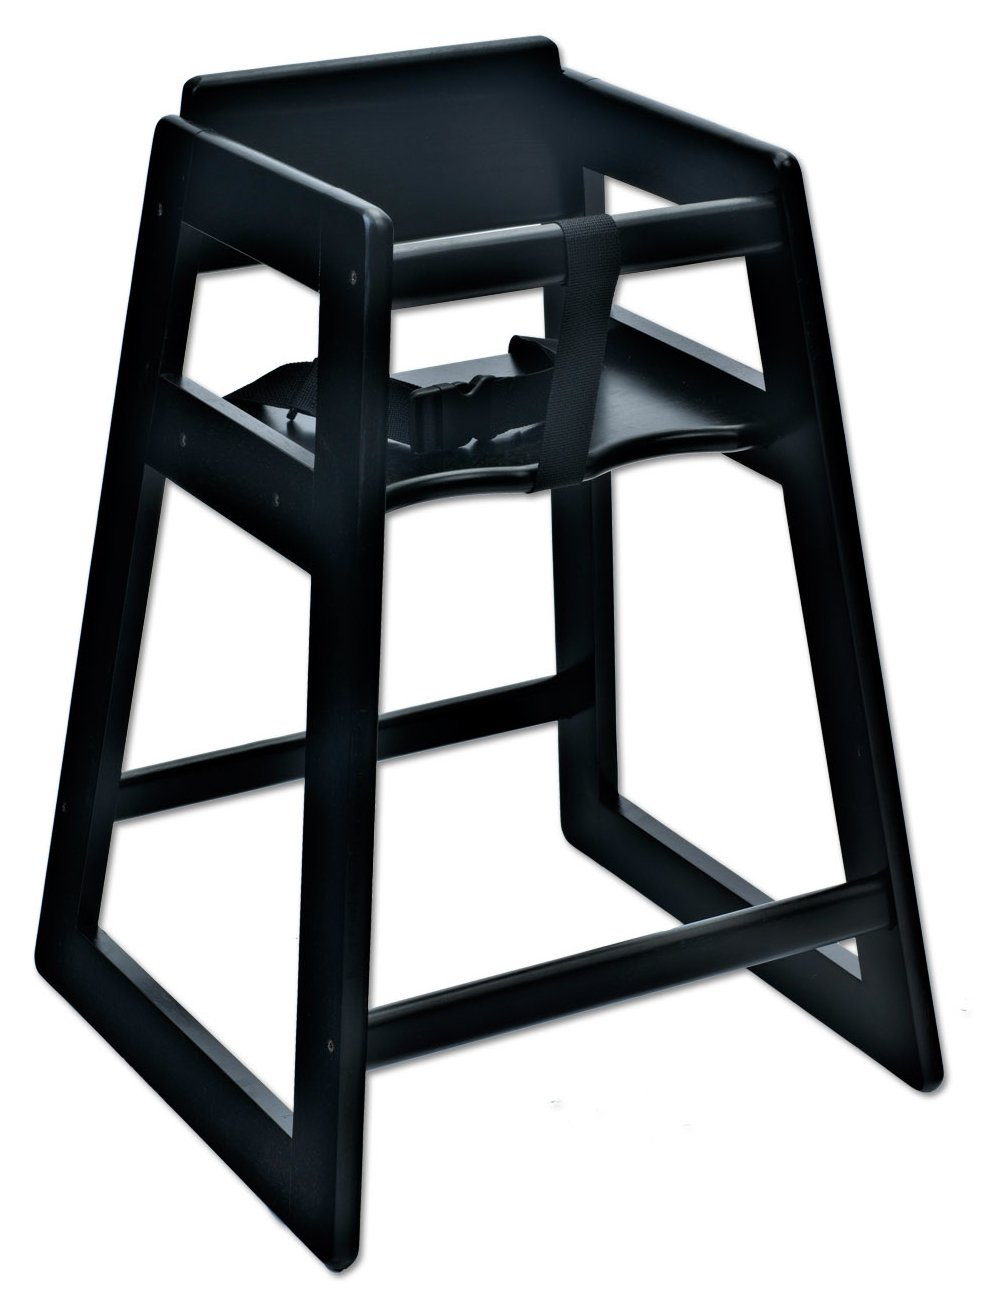 Koala Kare KB800 22 Deluxe Wood High Chair Black 21 Height 20 Width 29 Length